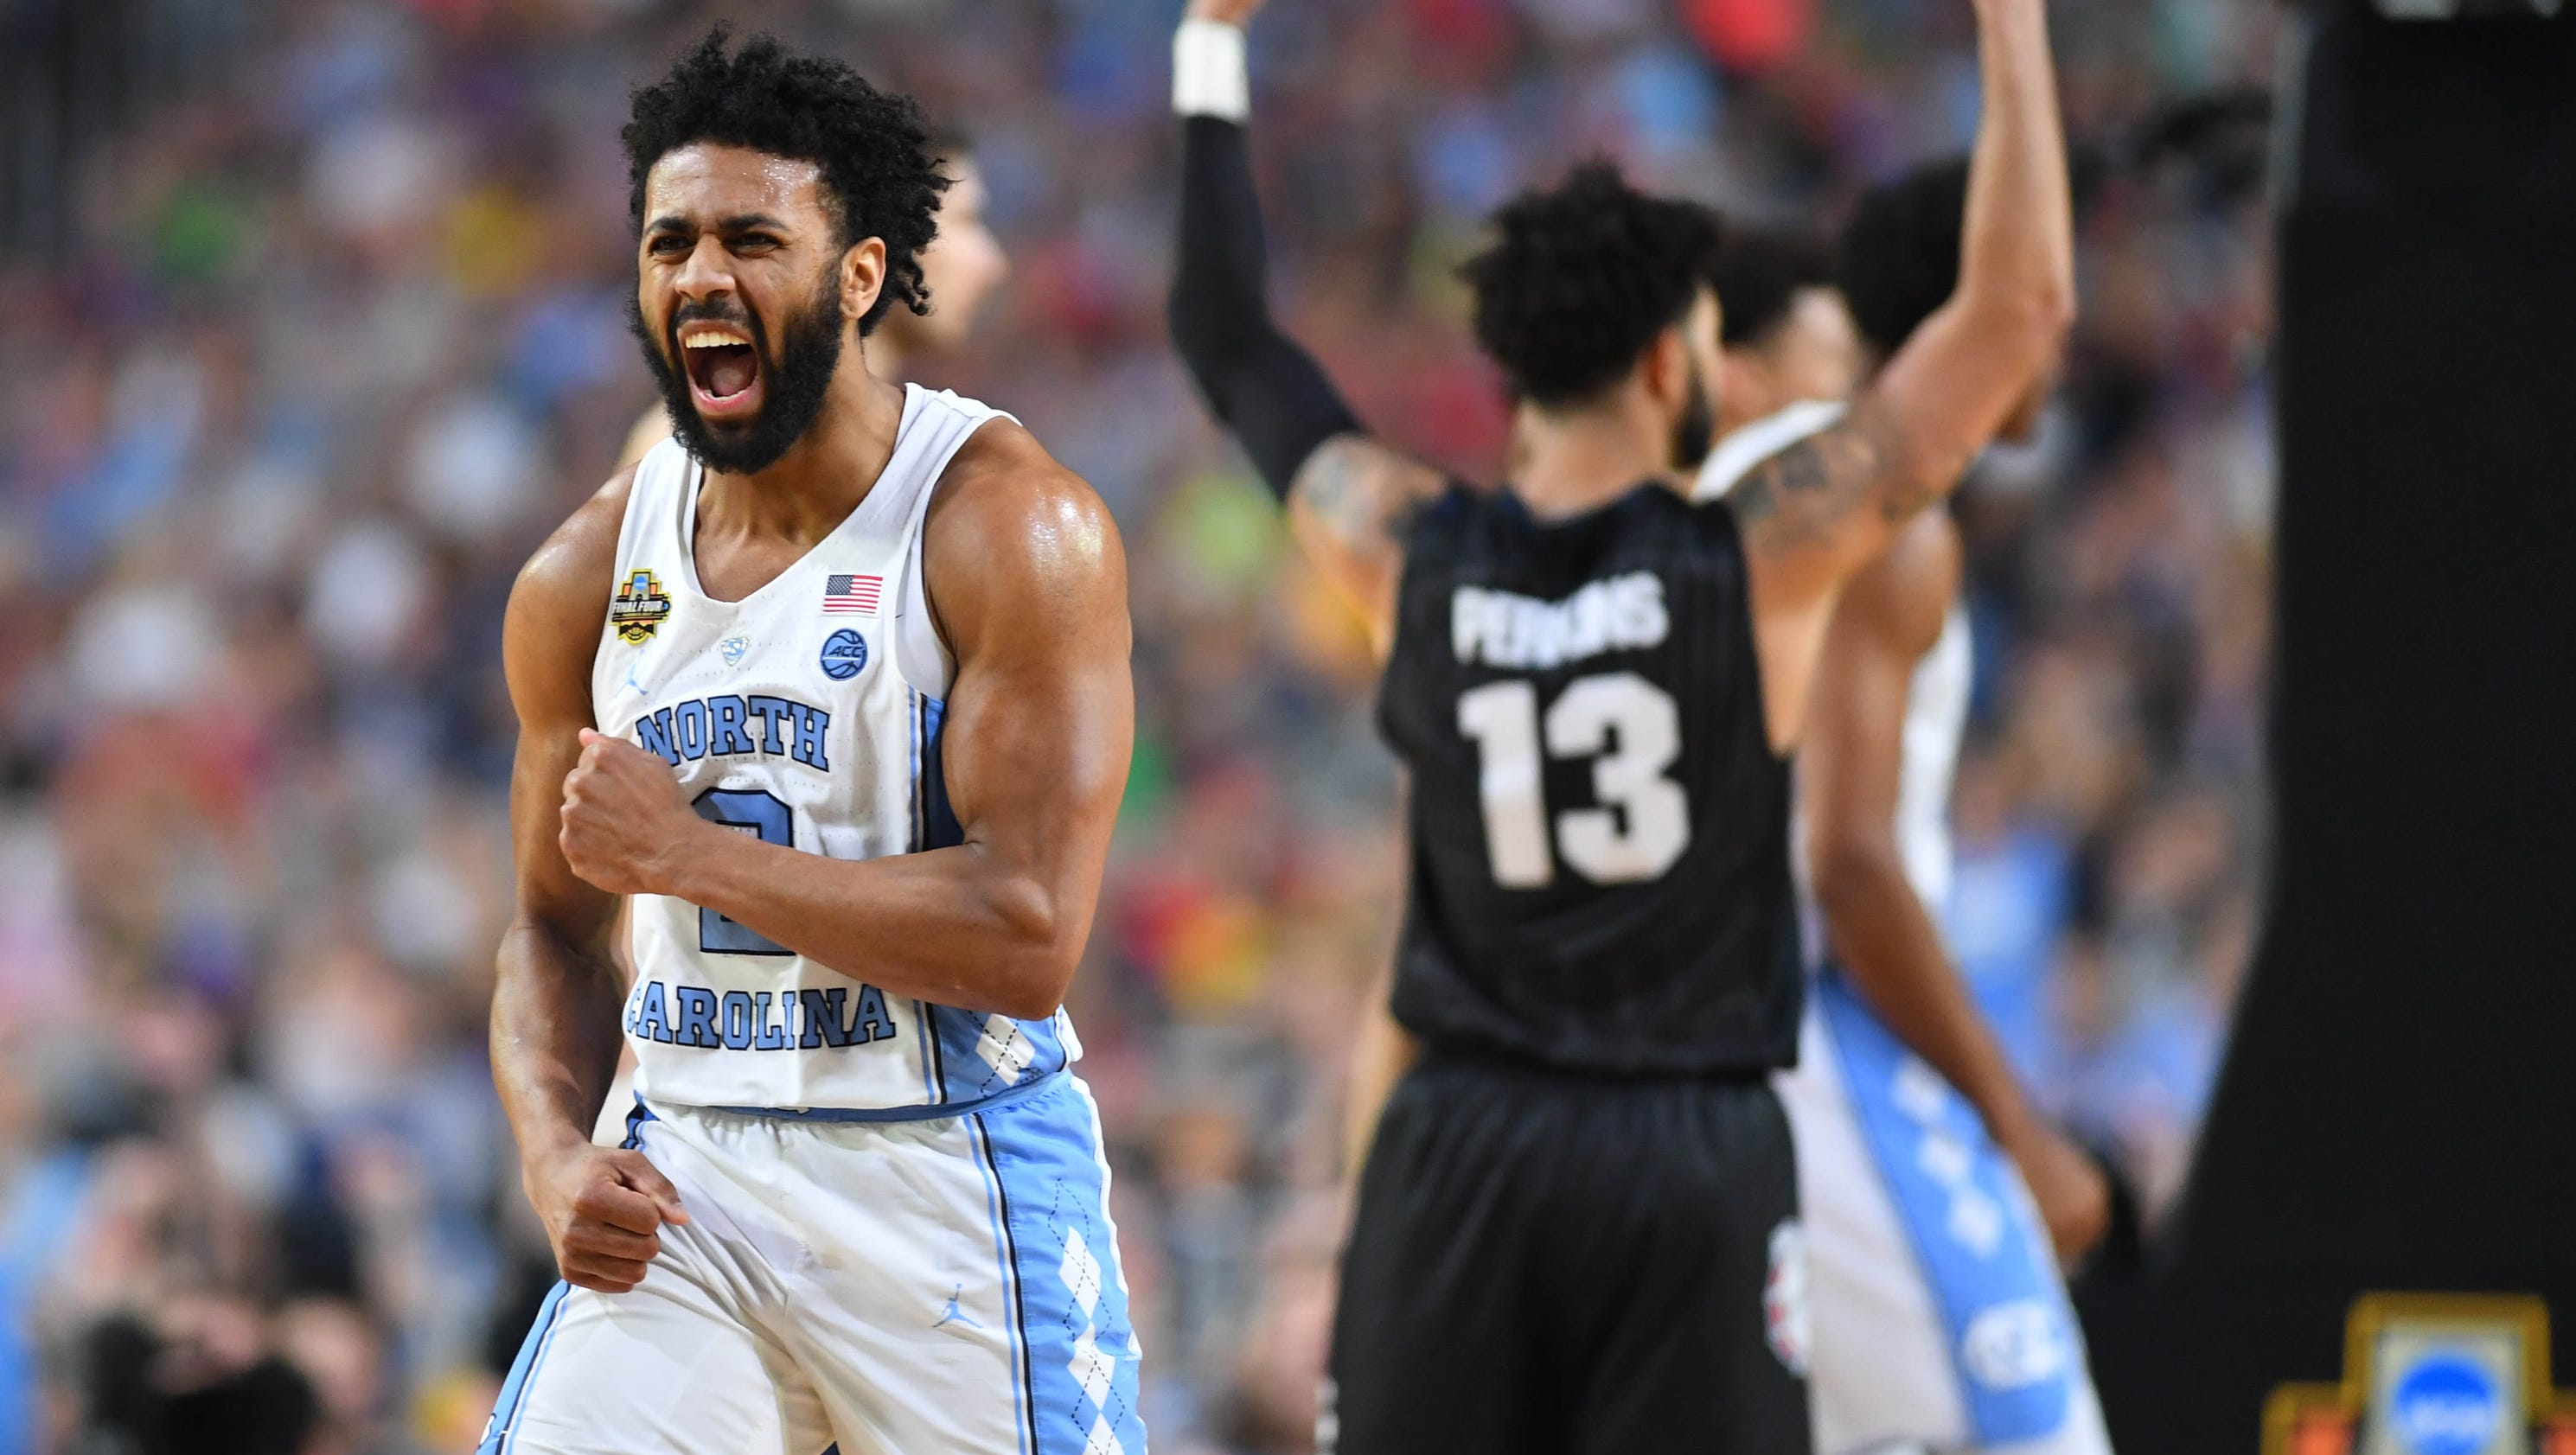 Highlights from the national championship gonzaga vs north carolina - Highlights From The National Championship Gonzaga Vs North Carolina 52